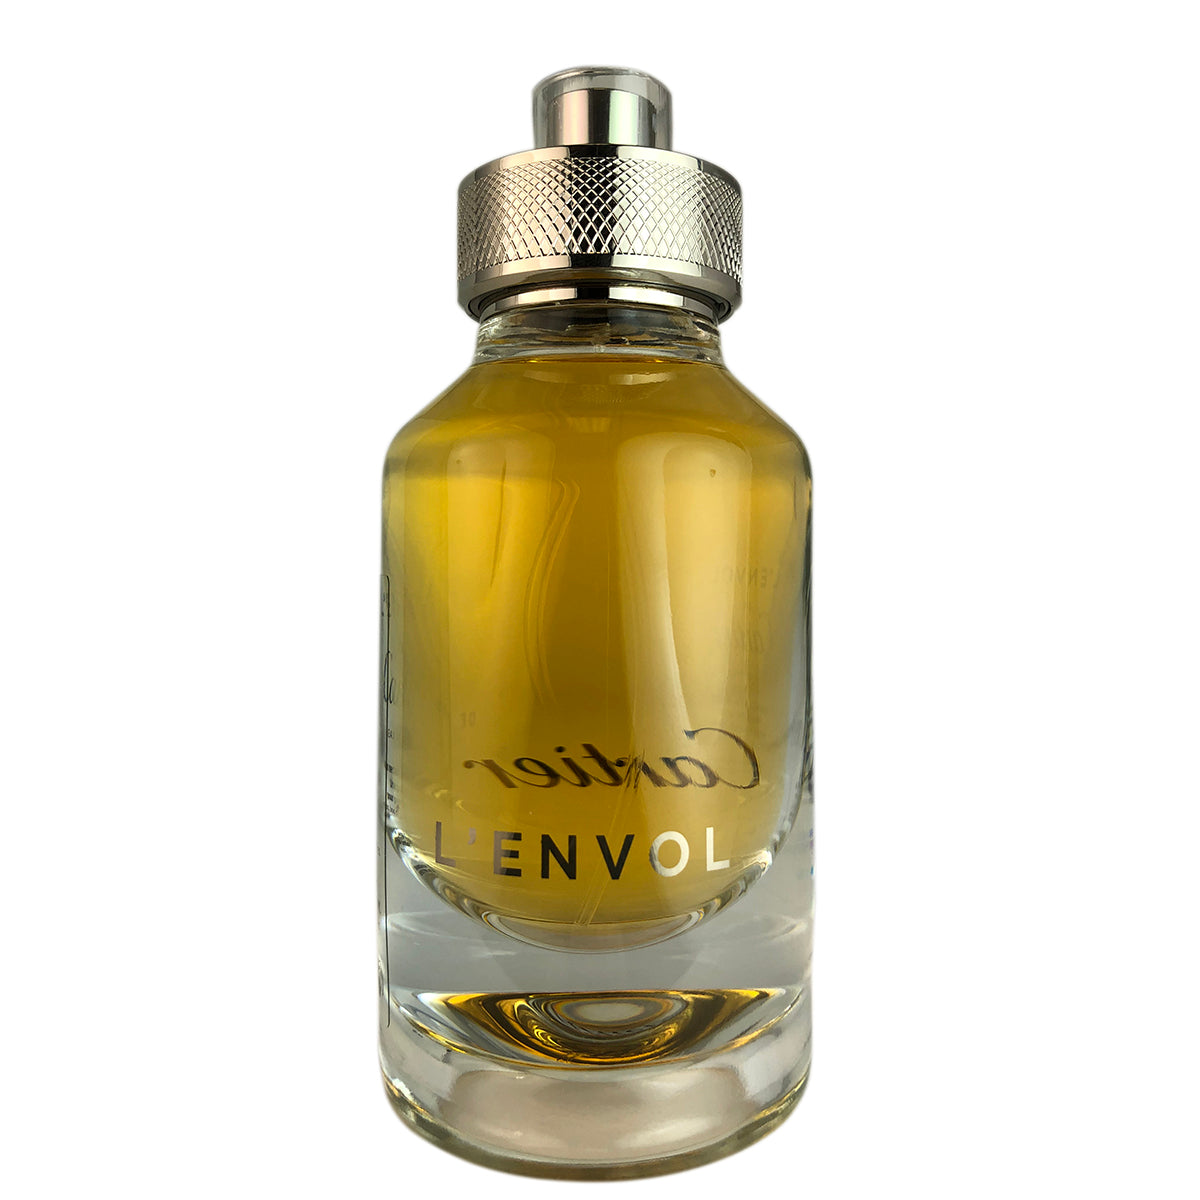 Cartier L'Envol de Cartier Eau De Parfum For Men Spray 2.7 Oz tester